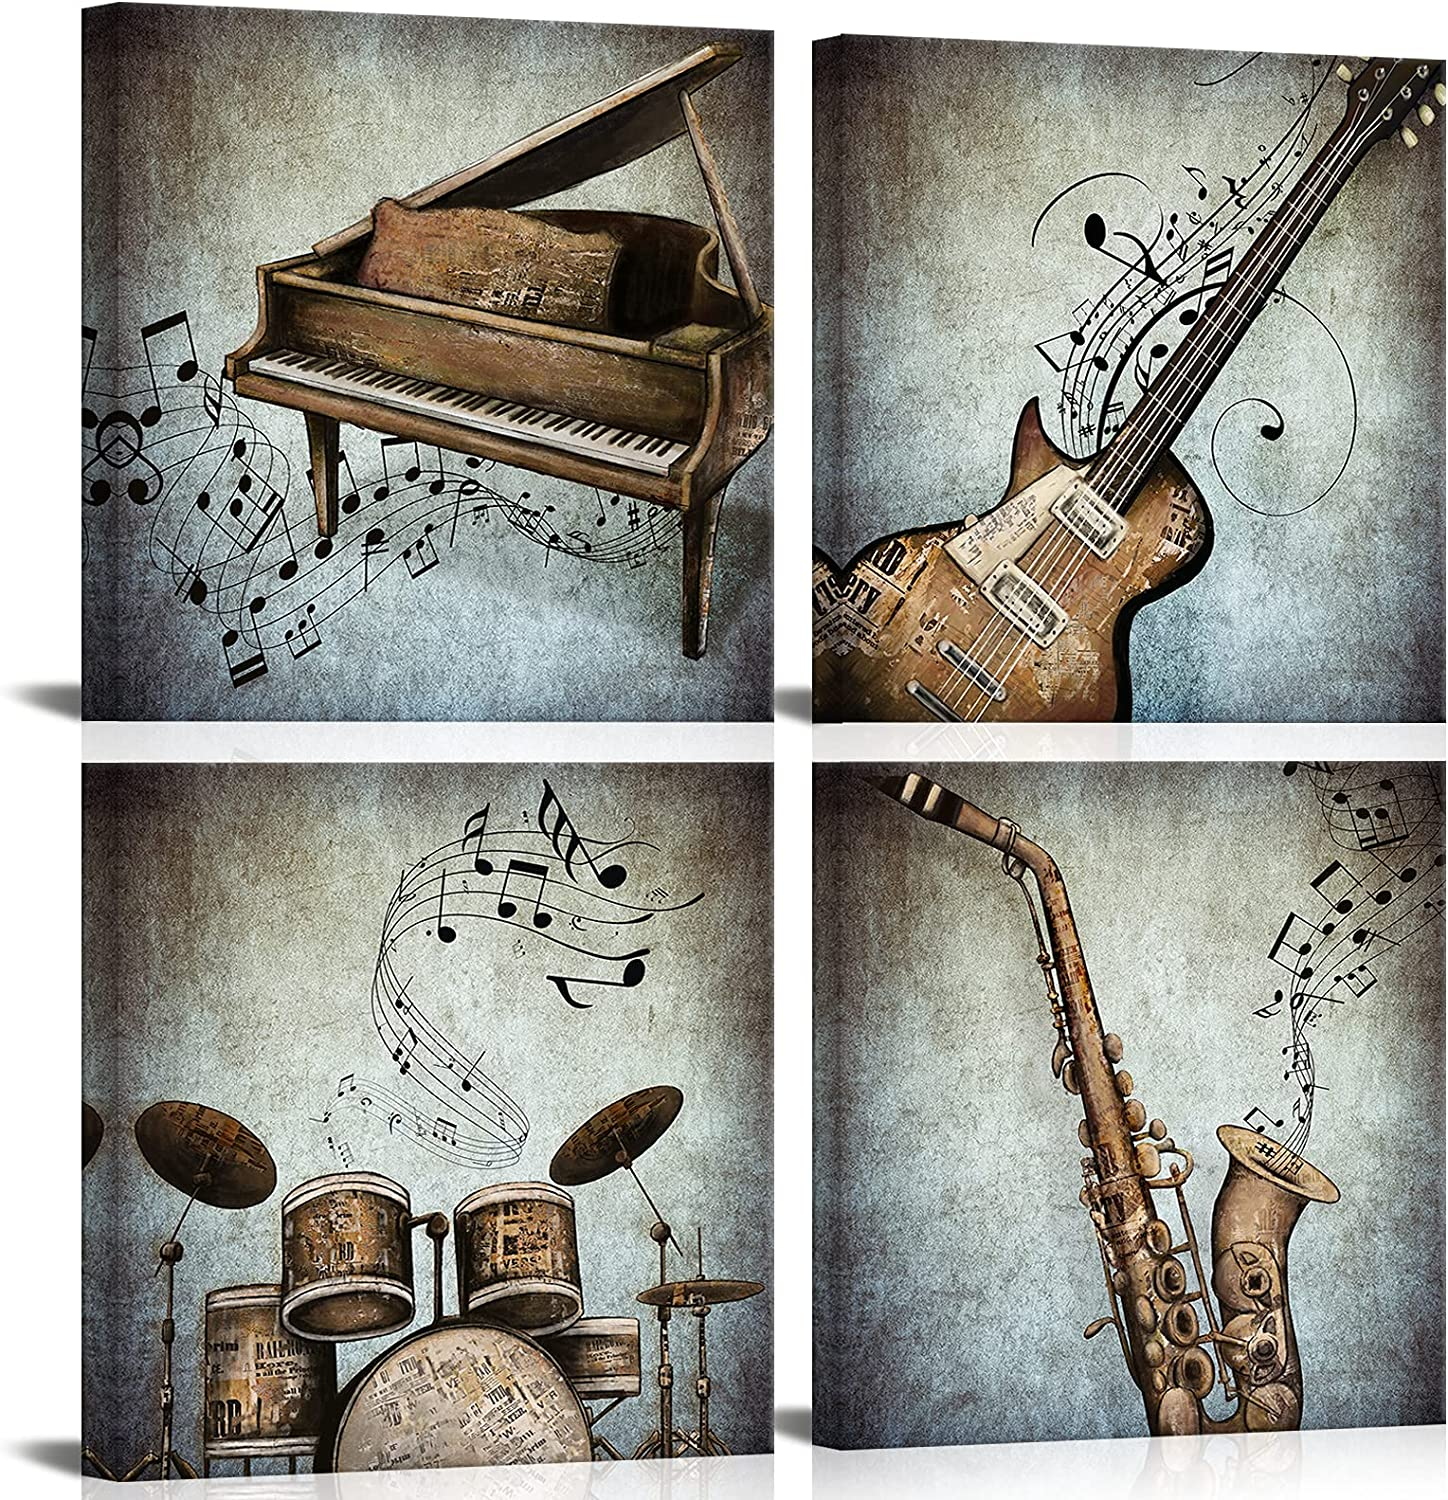 ArtKissMore 4 Pcs Music Wall Art Vintage Piano Guitar Picture Drum Set Saxophone Canvas Painting Artwork for Modern Home Bedroom Living Room Decor Framed Ready to Hang 12x12inchx4 Panel